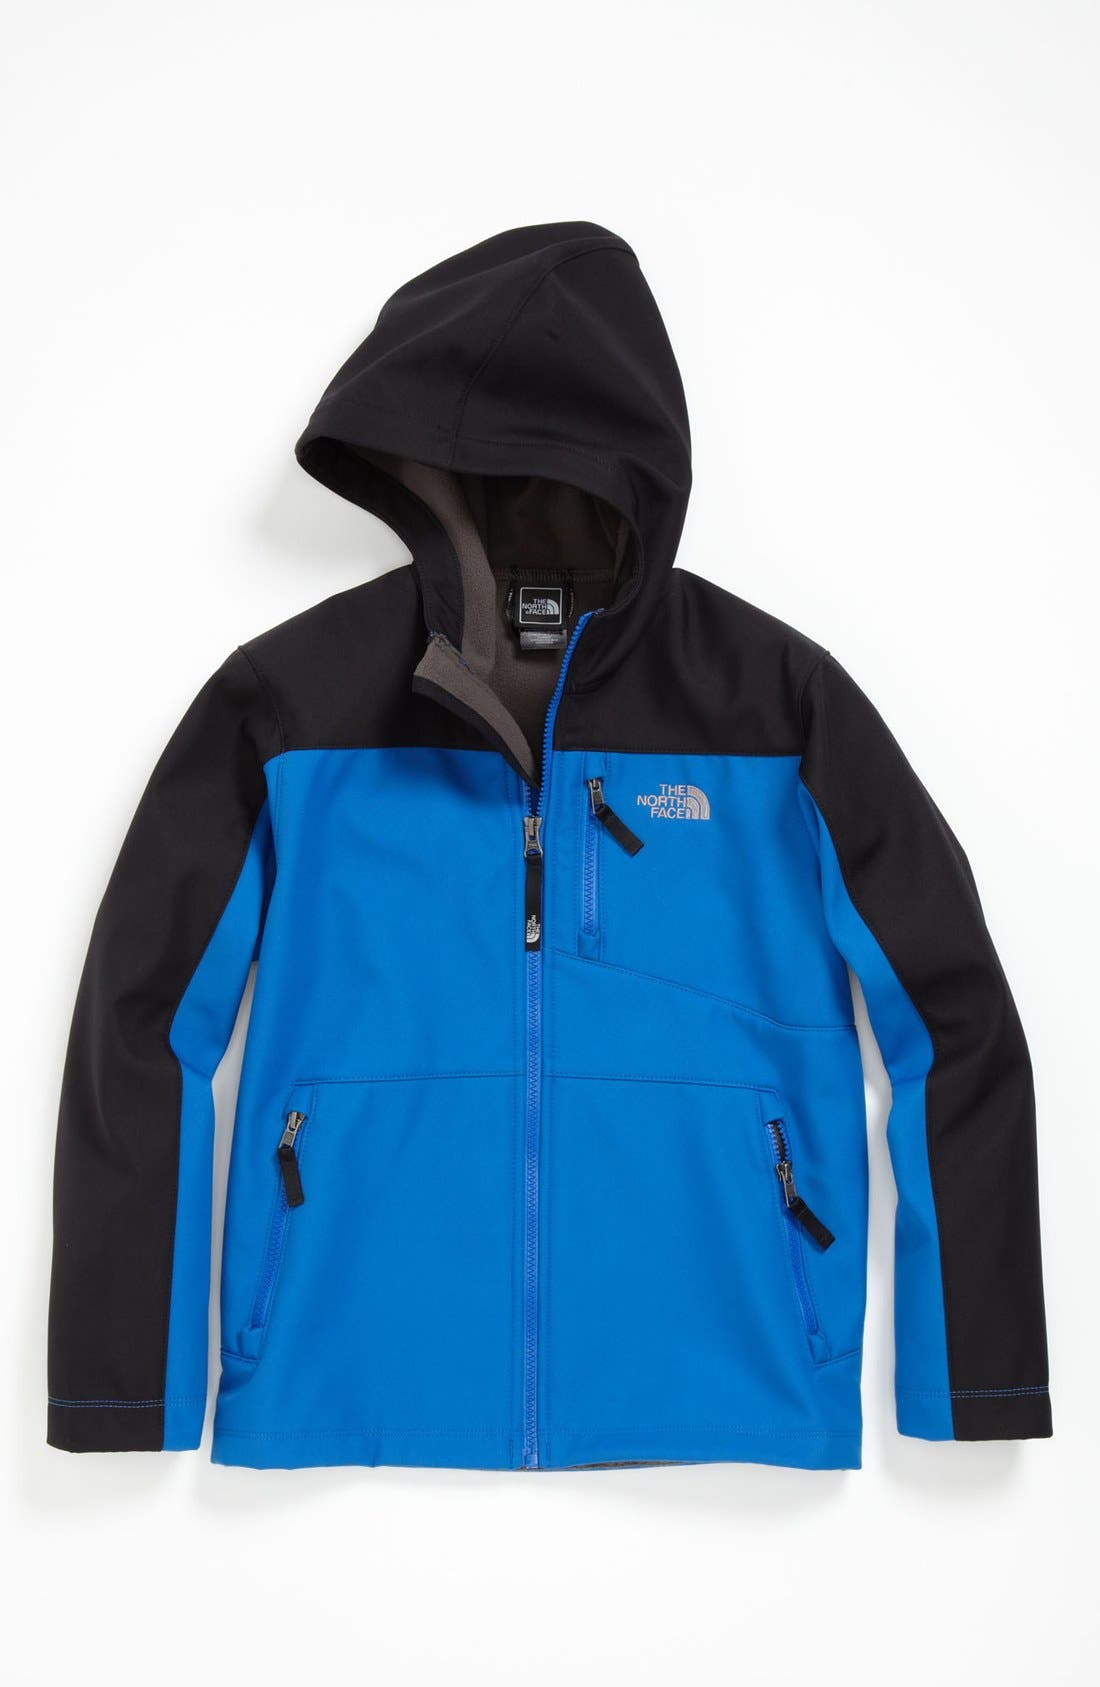 Main Image - The North Face 'Apex Bionic' Hooded Jacket (Little Boys & Big Boys) (Nordstrom Exclusive)